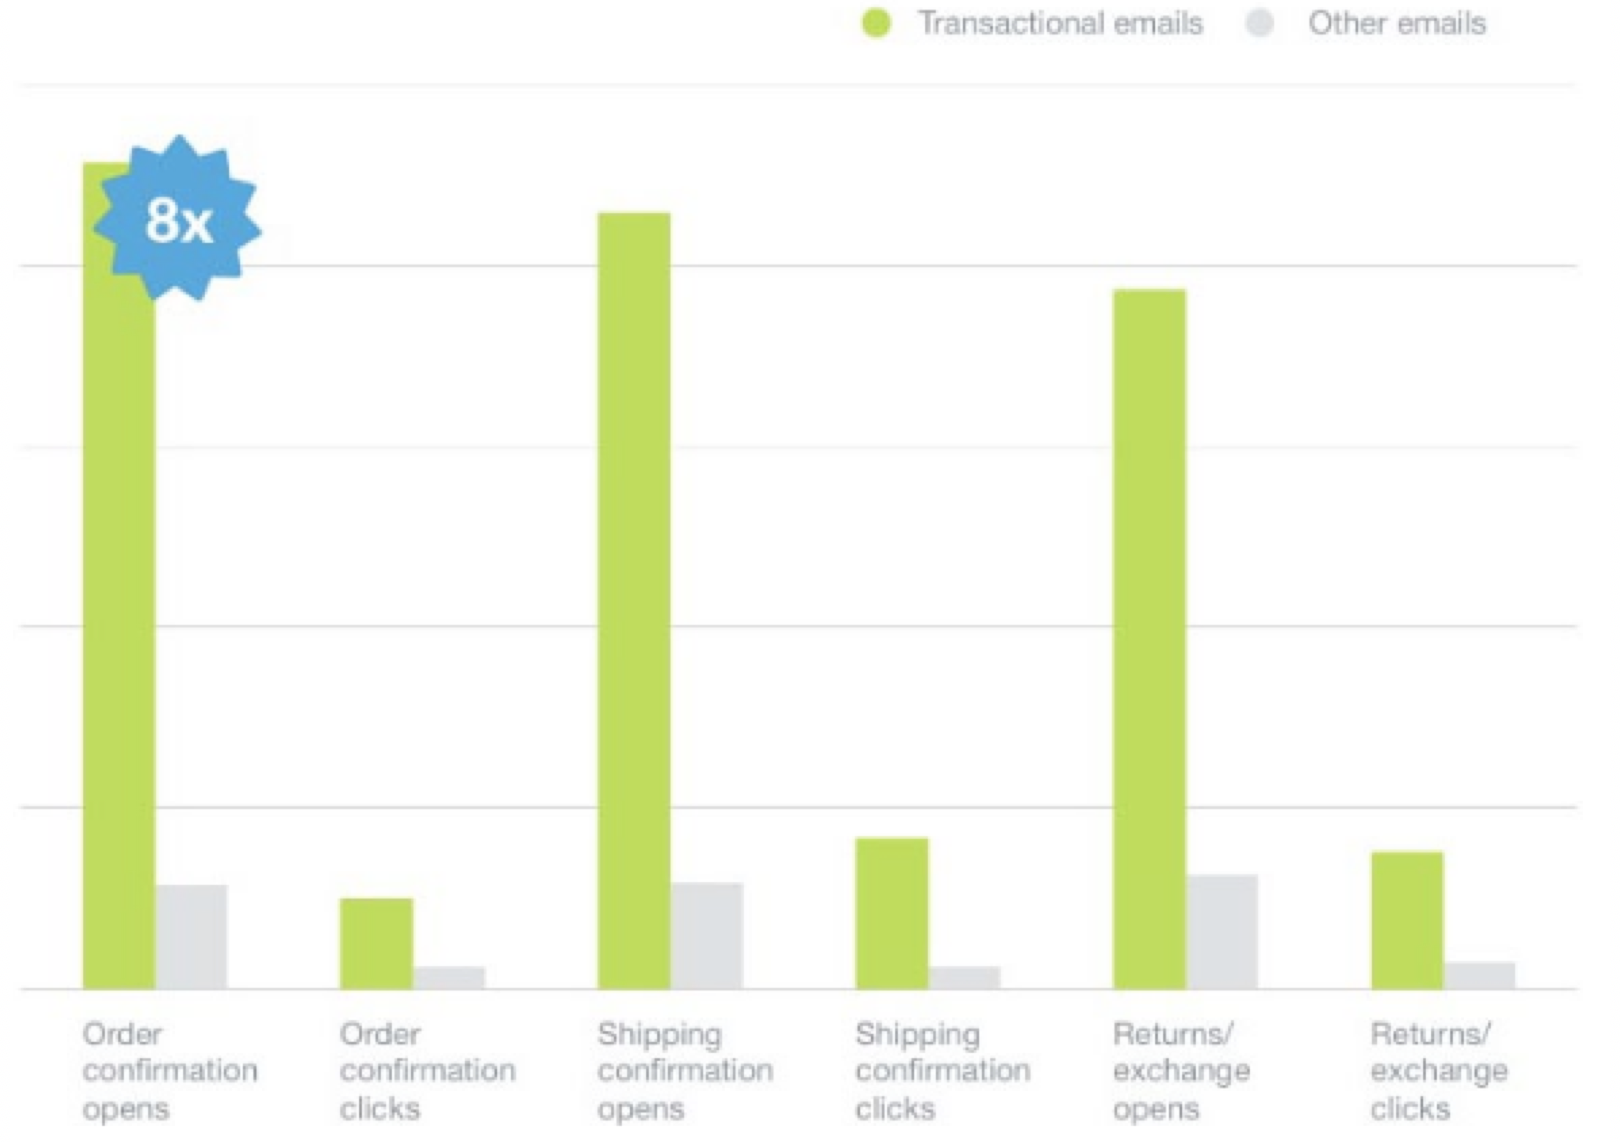 Transactional email are effective for marketing